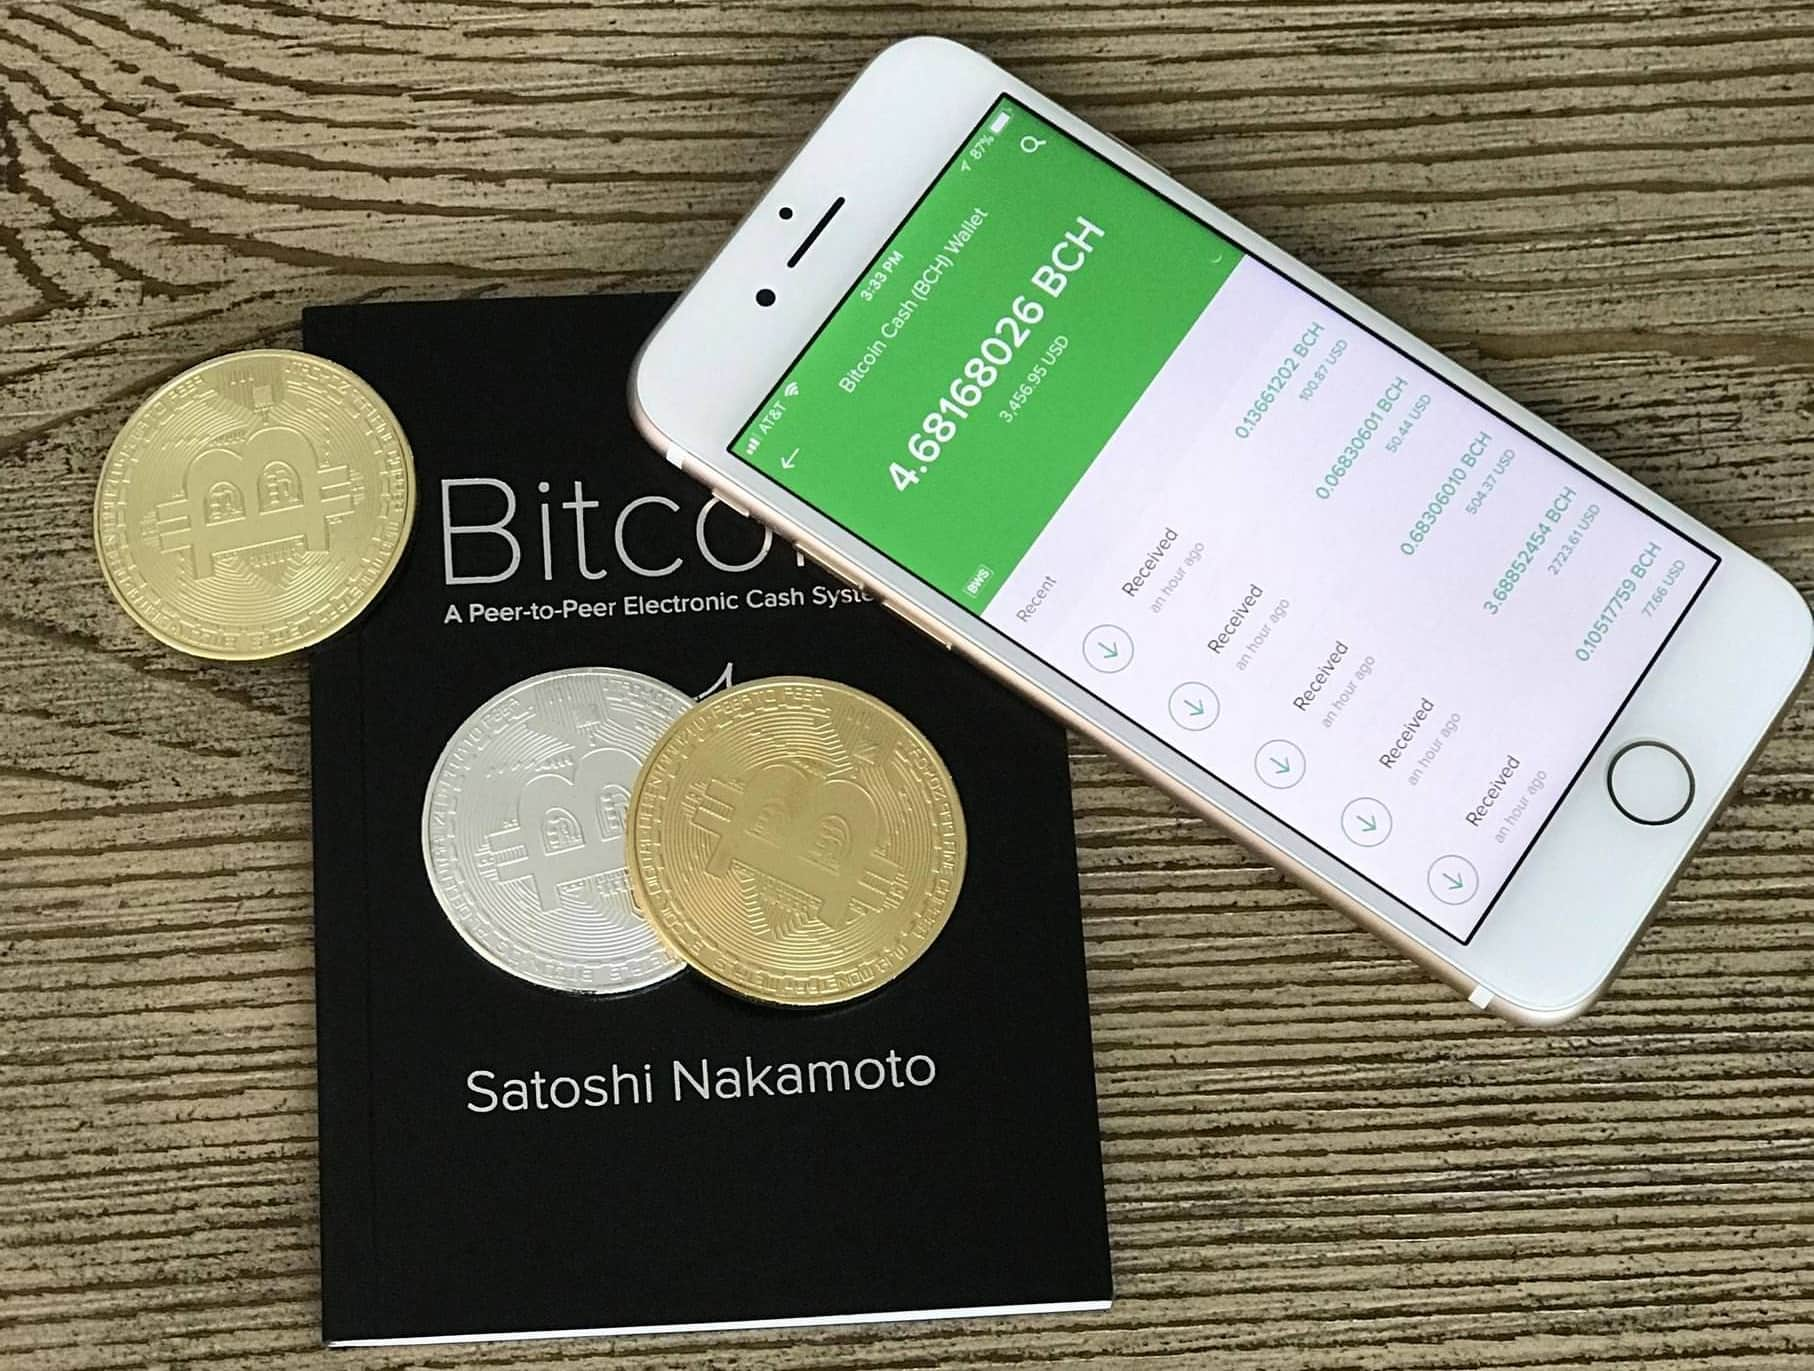 What Is Bitcoin Cash And Where To Buy It?